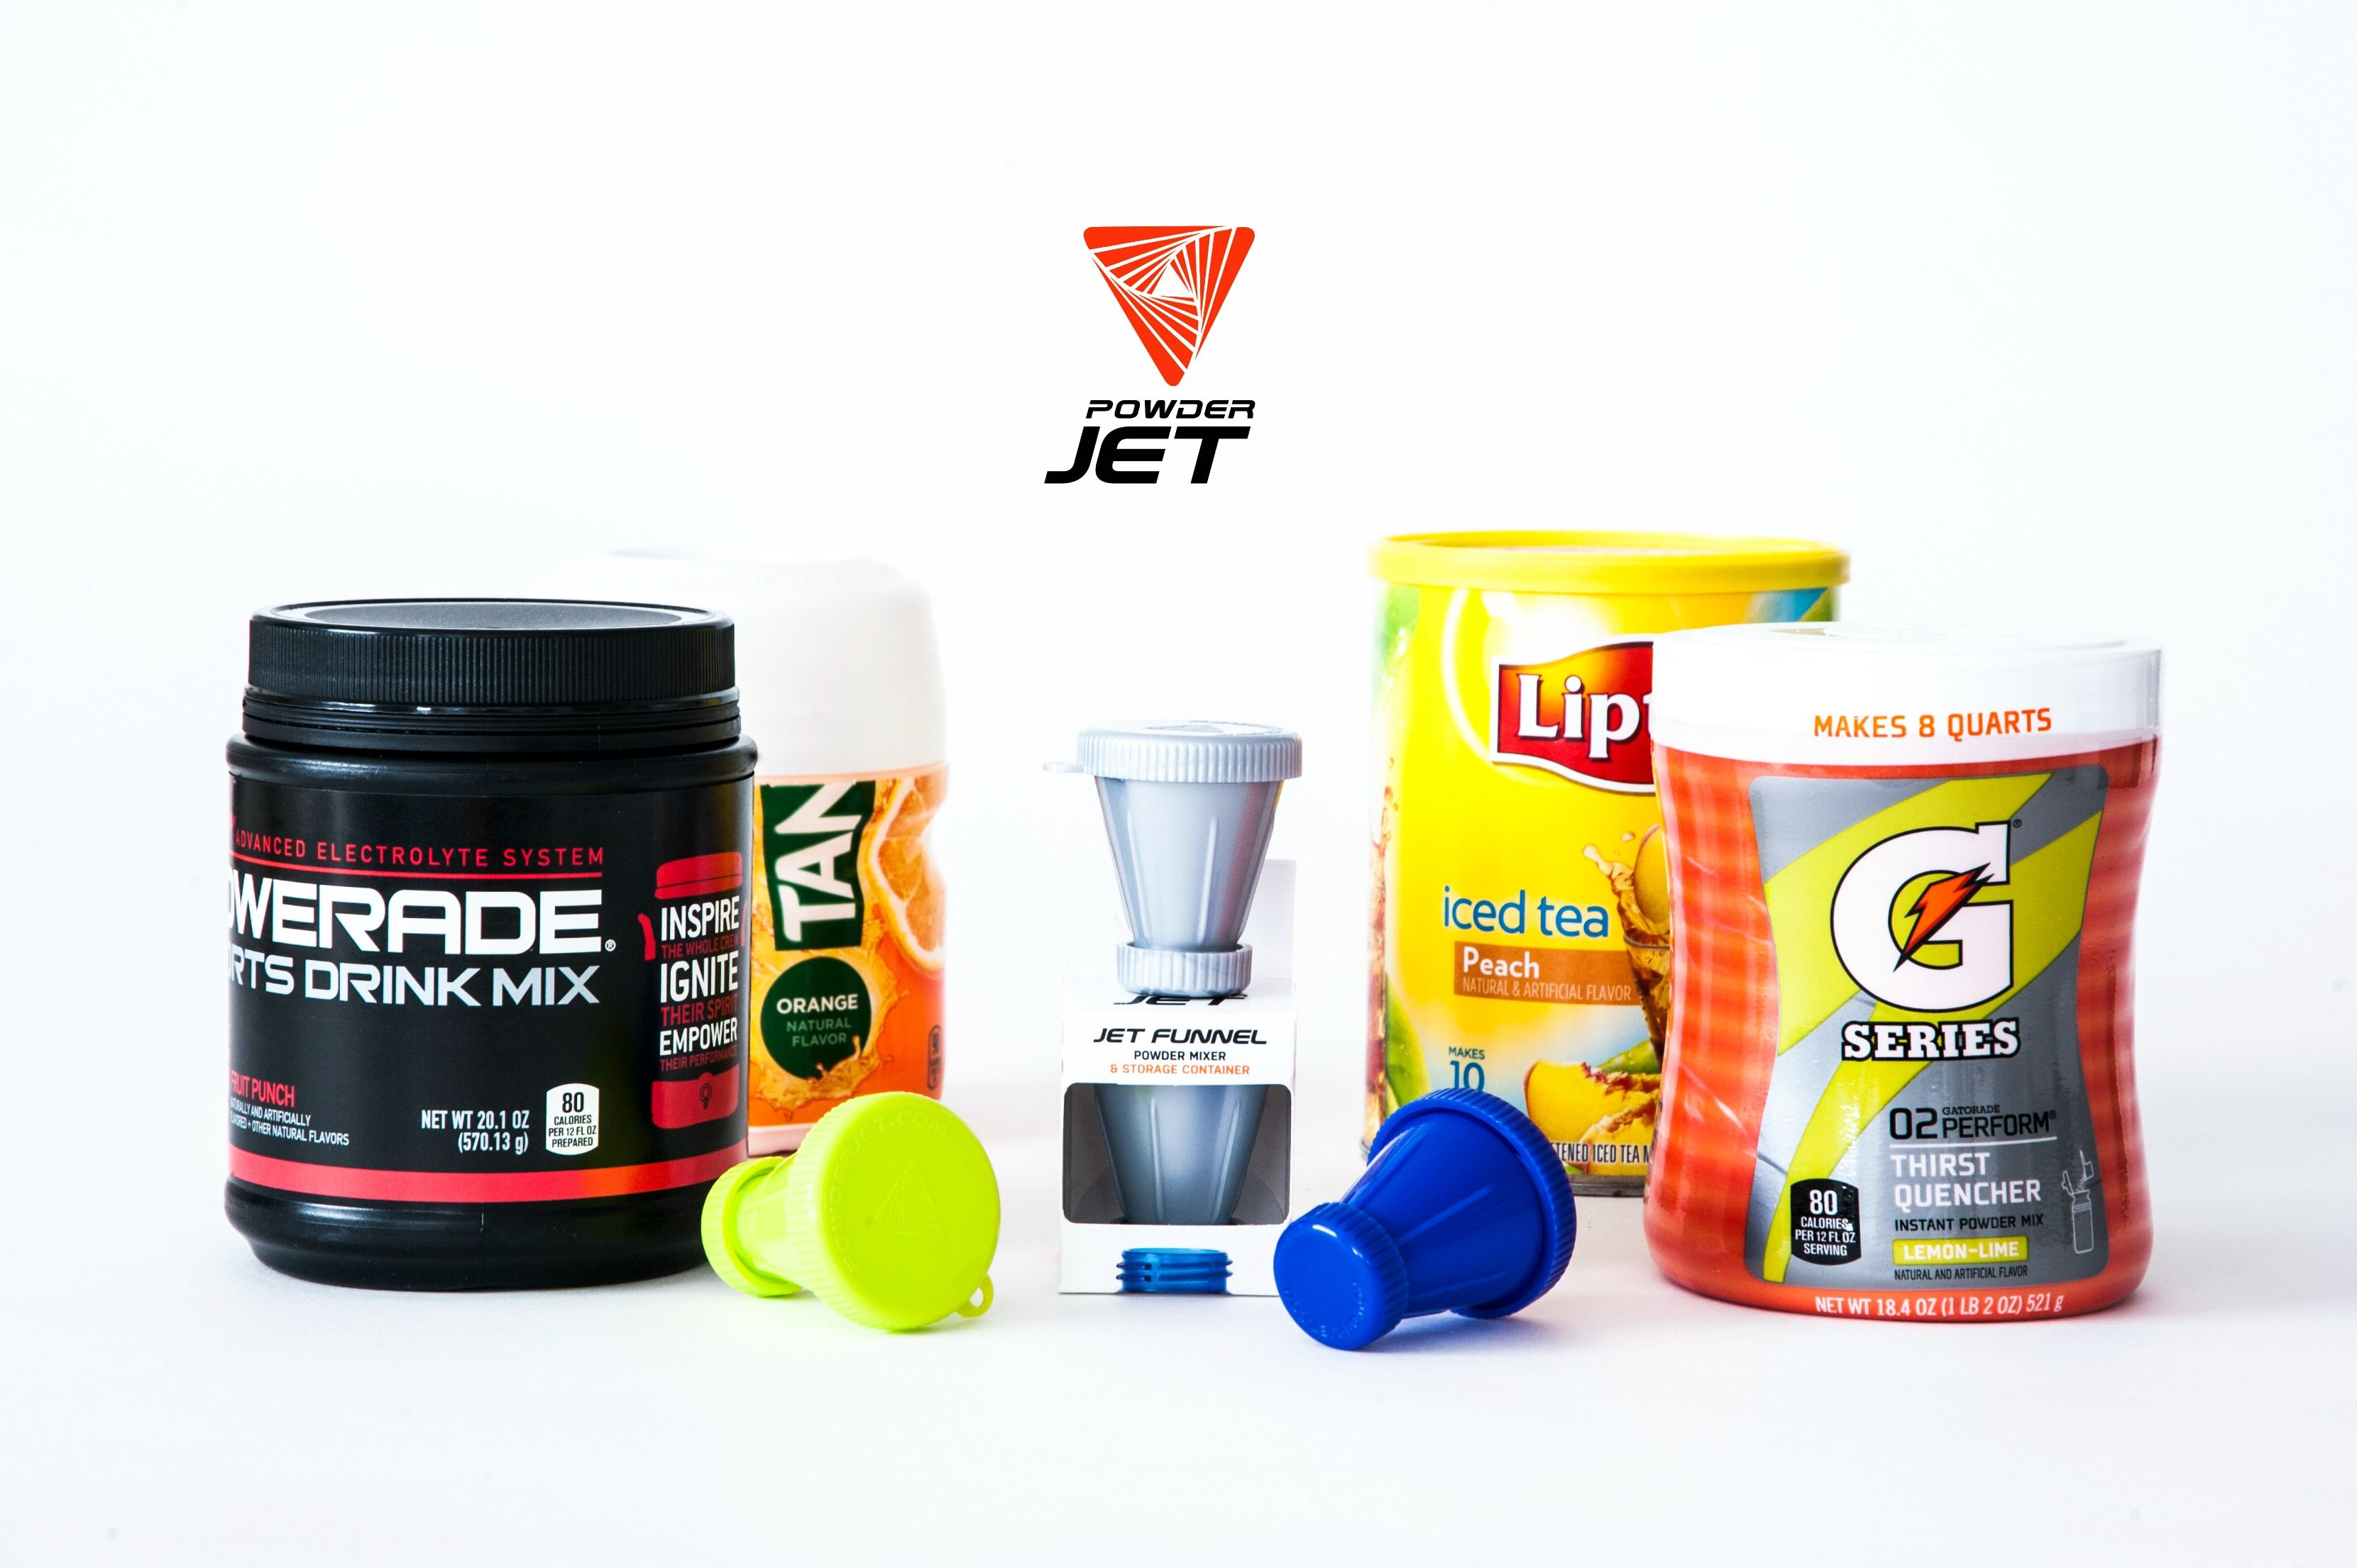 The Perfectly Sized Powderjet Mini Is The Solution For Transporting And Mixing Your Favorite Sport Drink Mix Iced Tea Protein Funnel Iced Tea Mix Iced Tea